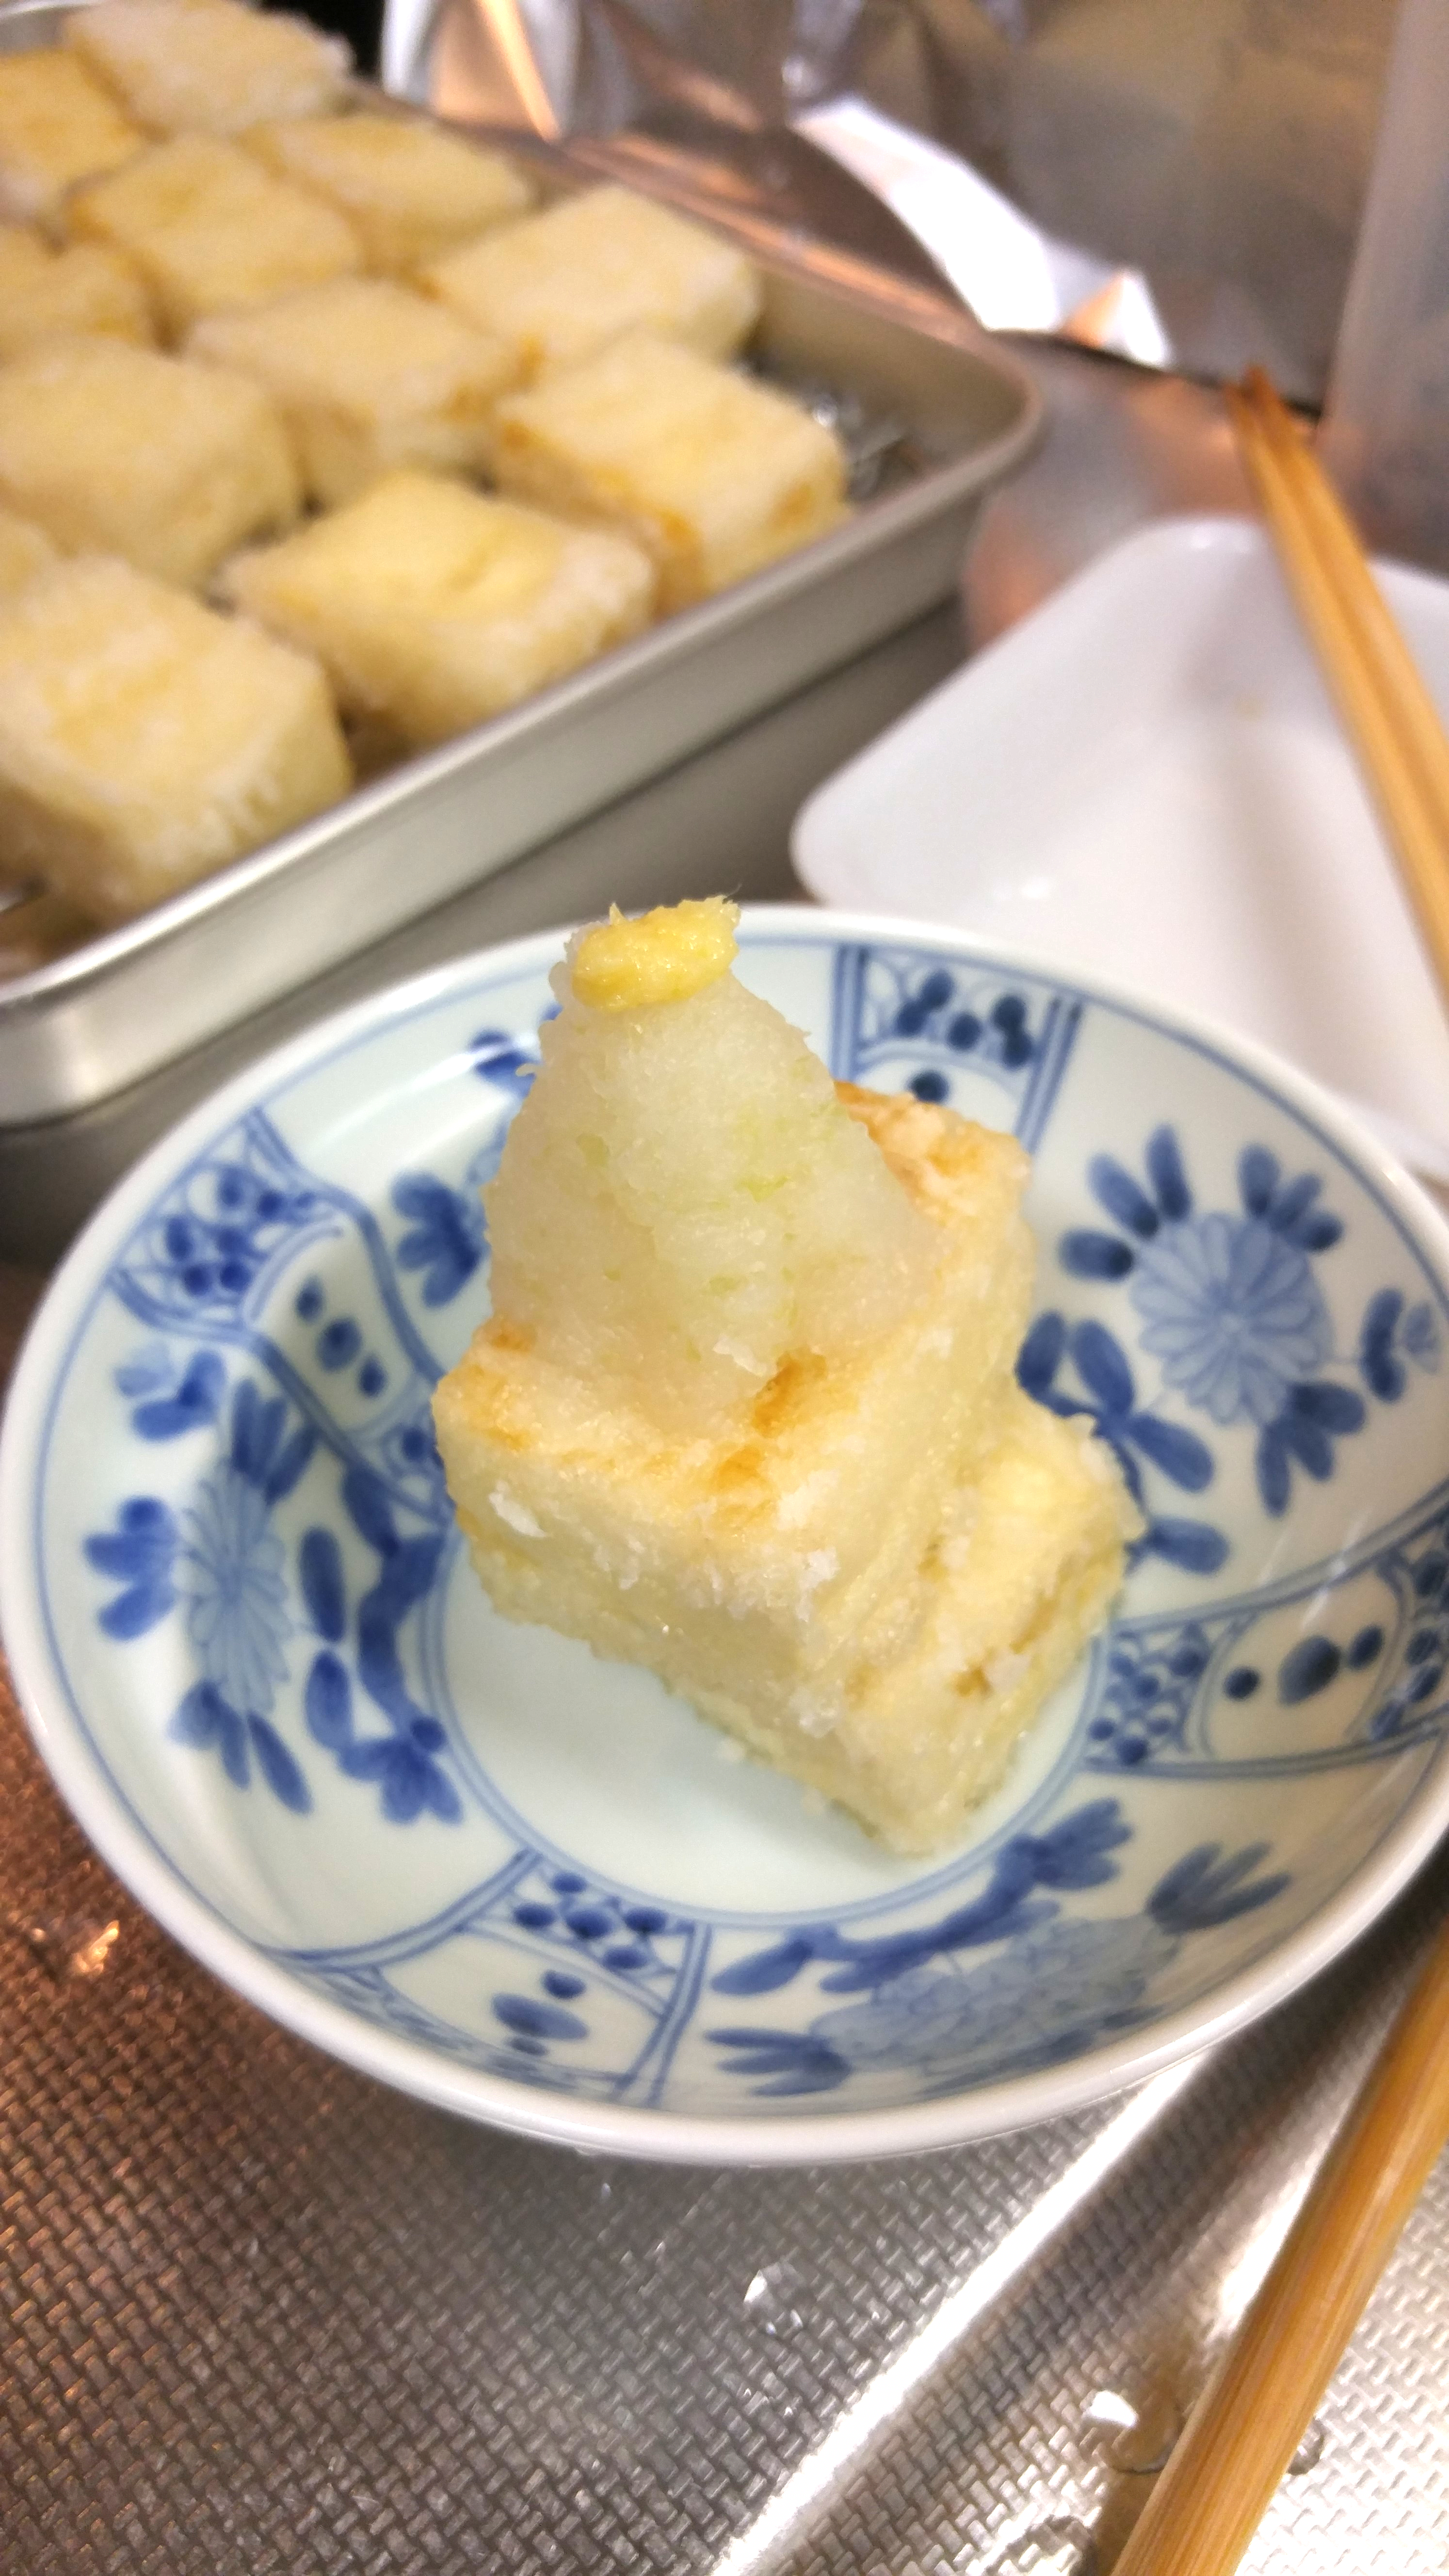 Agedashi Tofu with Daikon Radish and Ginger (before the sauce is added)